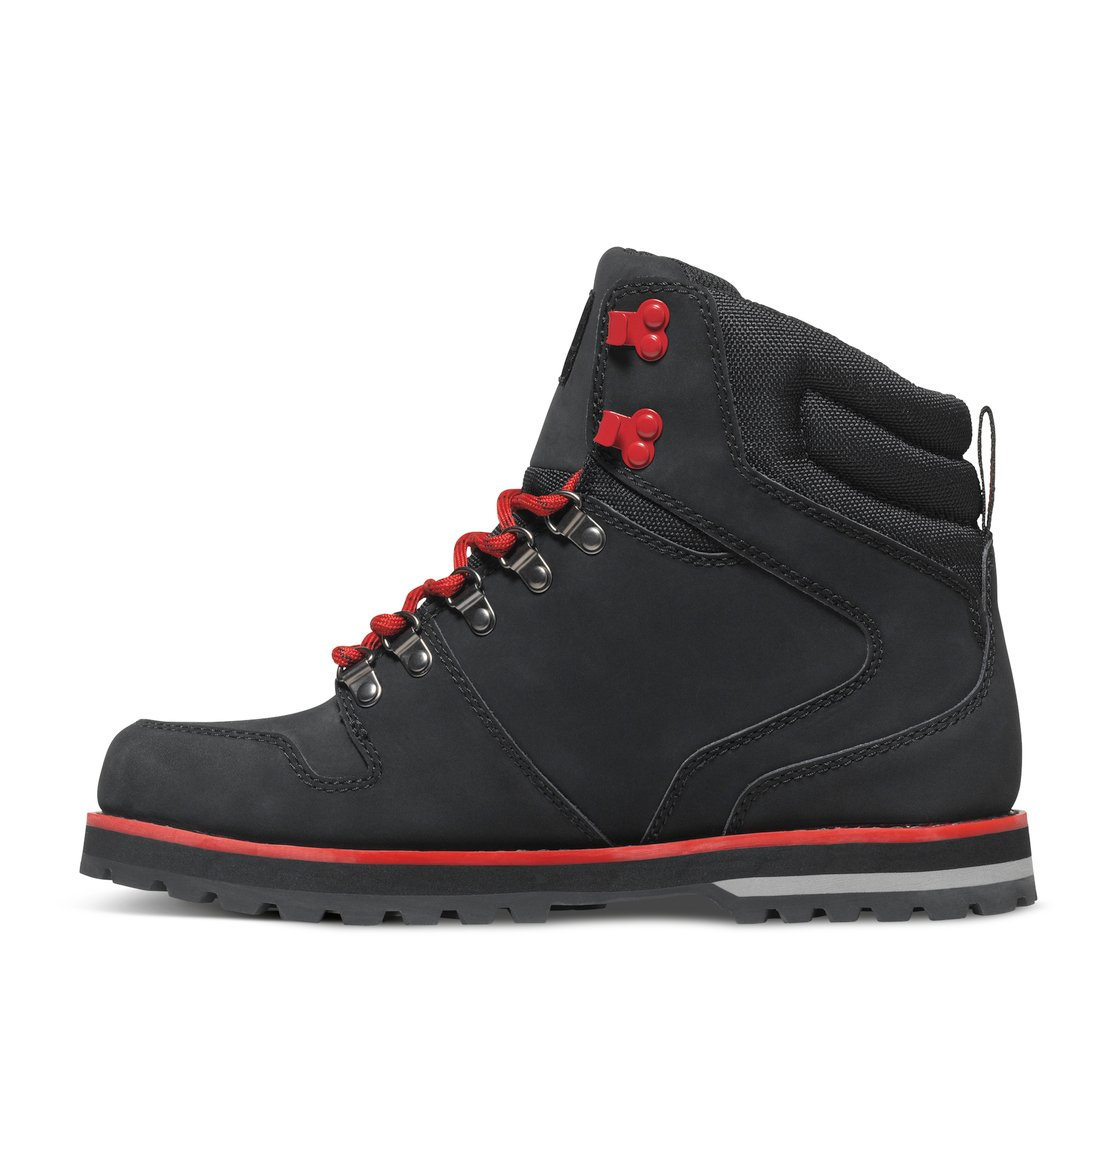 DC Shoes™ Men's Peary Winter Boots 320395